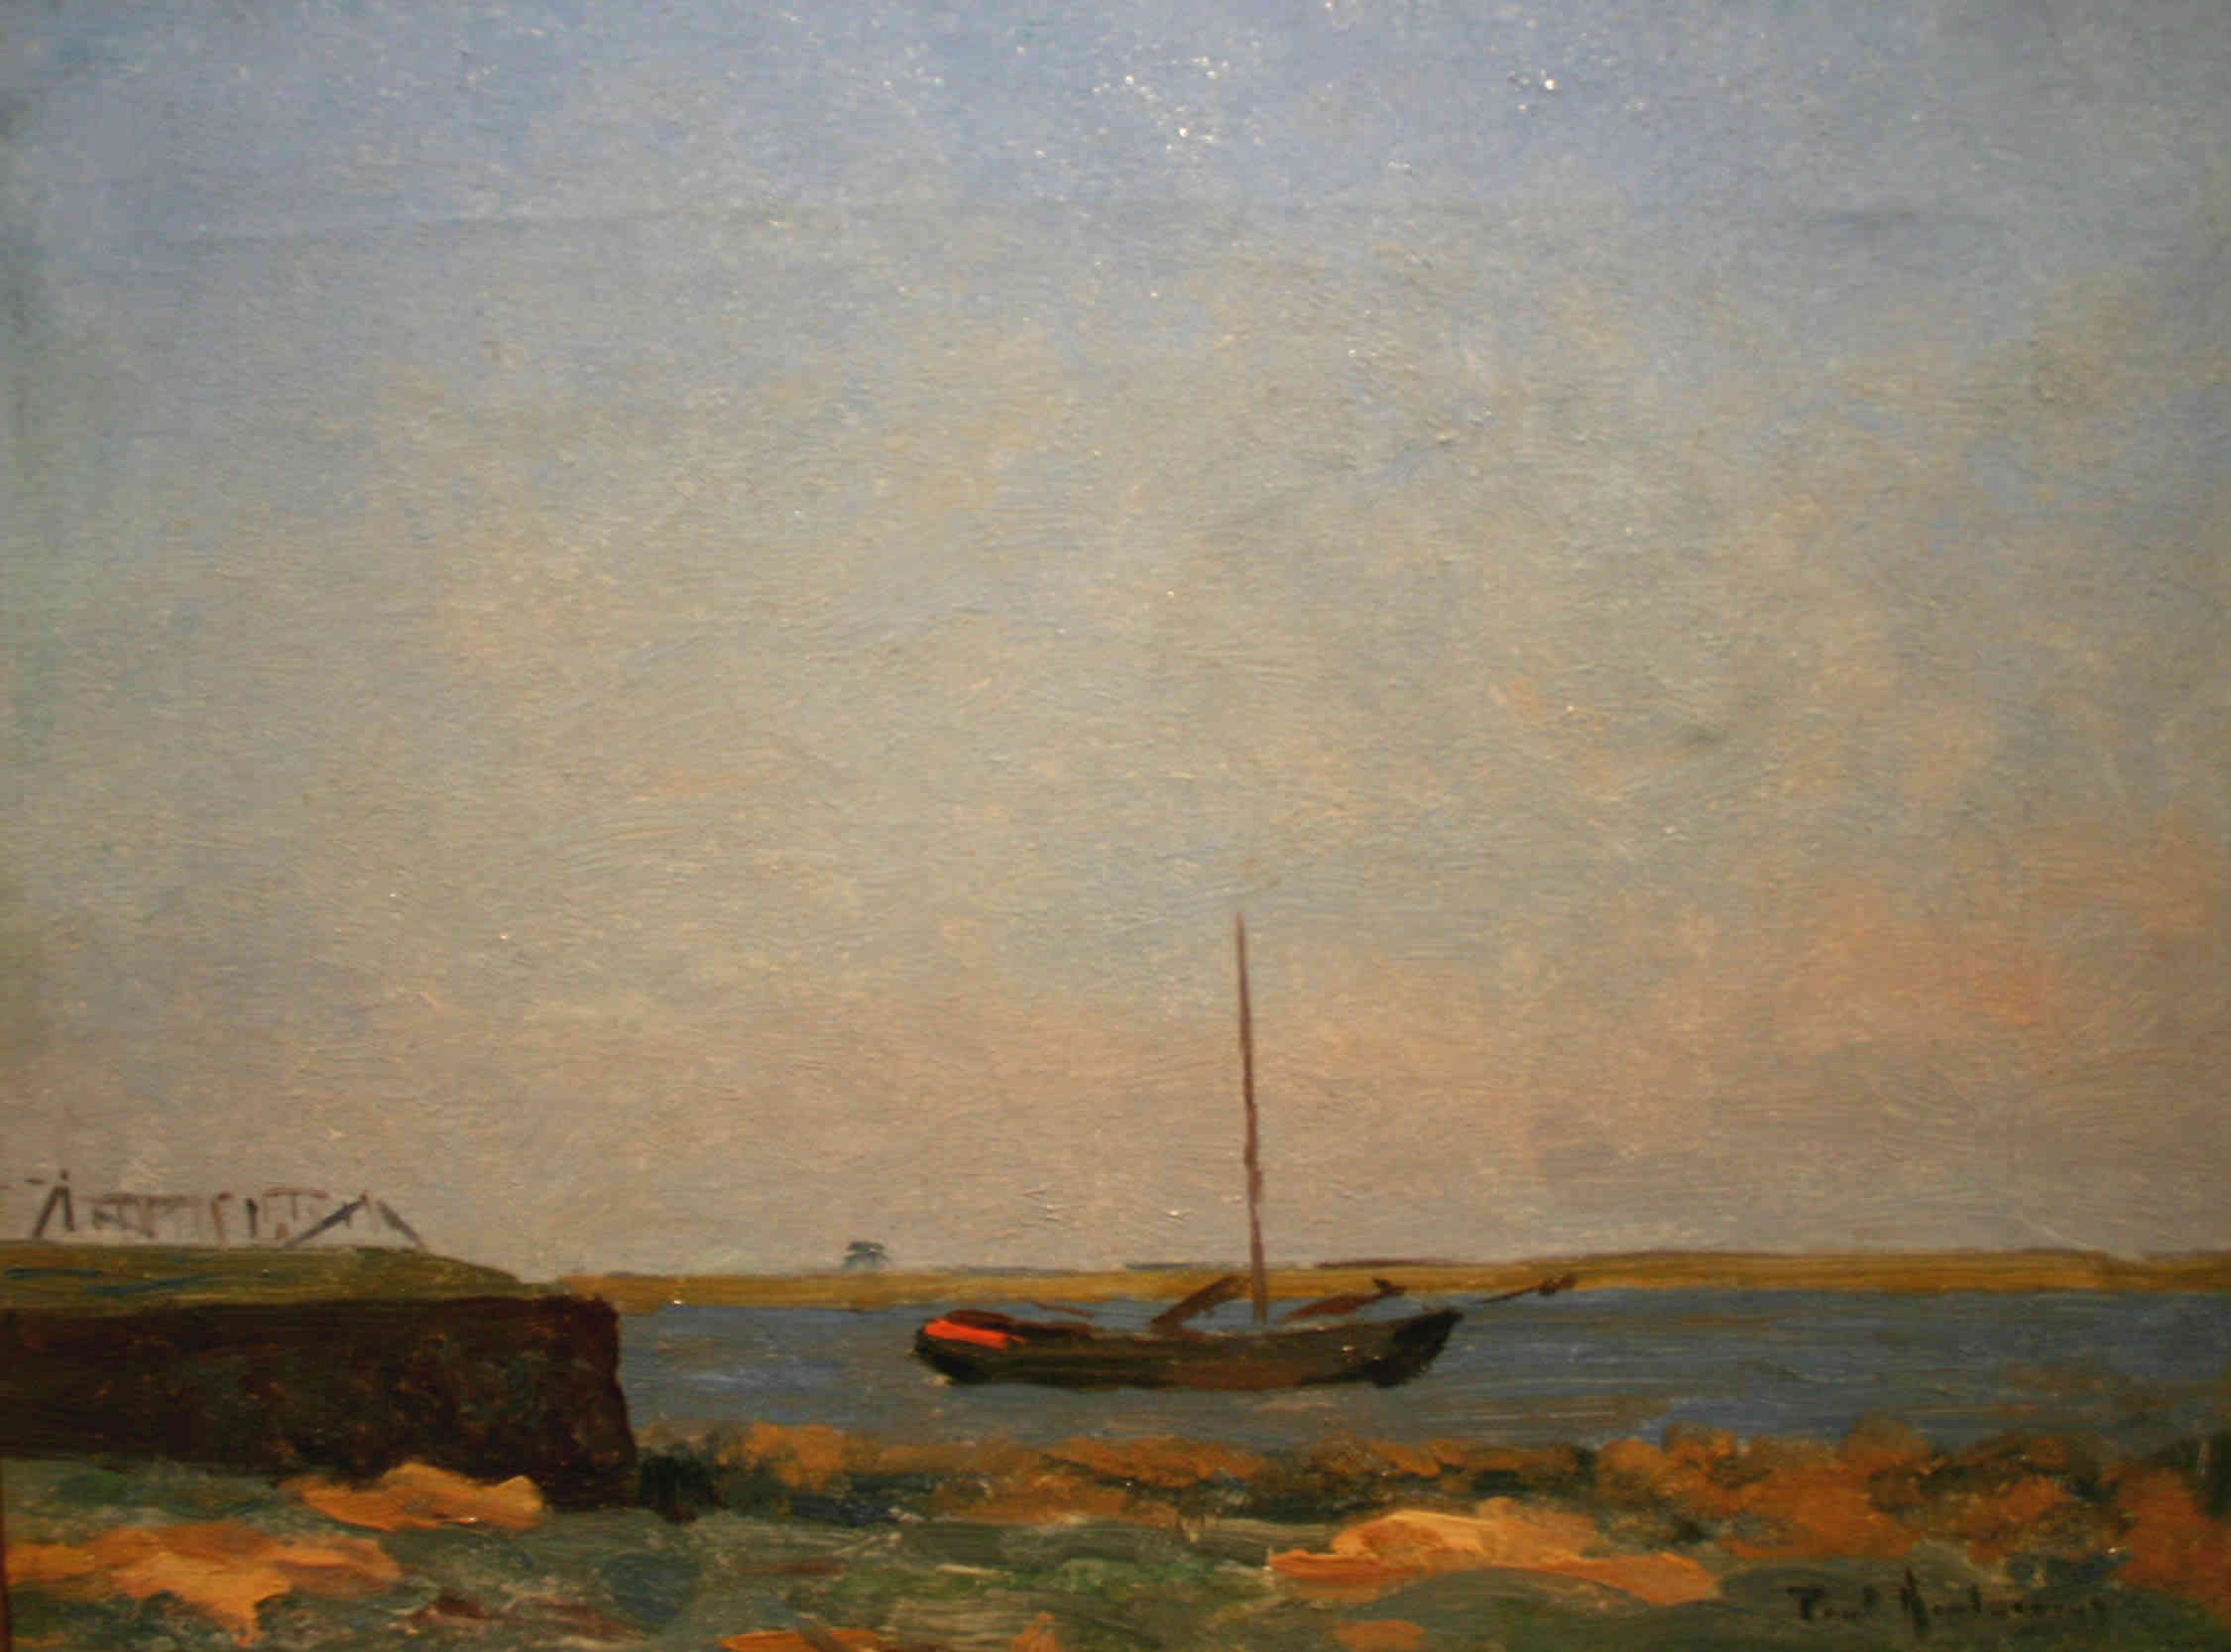 Boot voor de haven Paul Arntzenius (1883-1965) - Kunsthandel Studio 2000